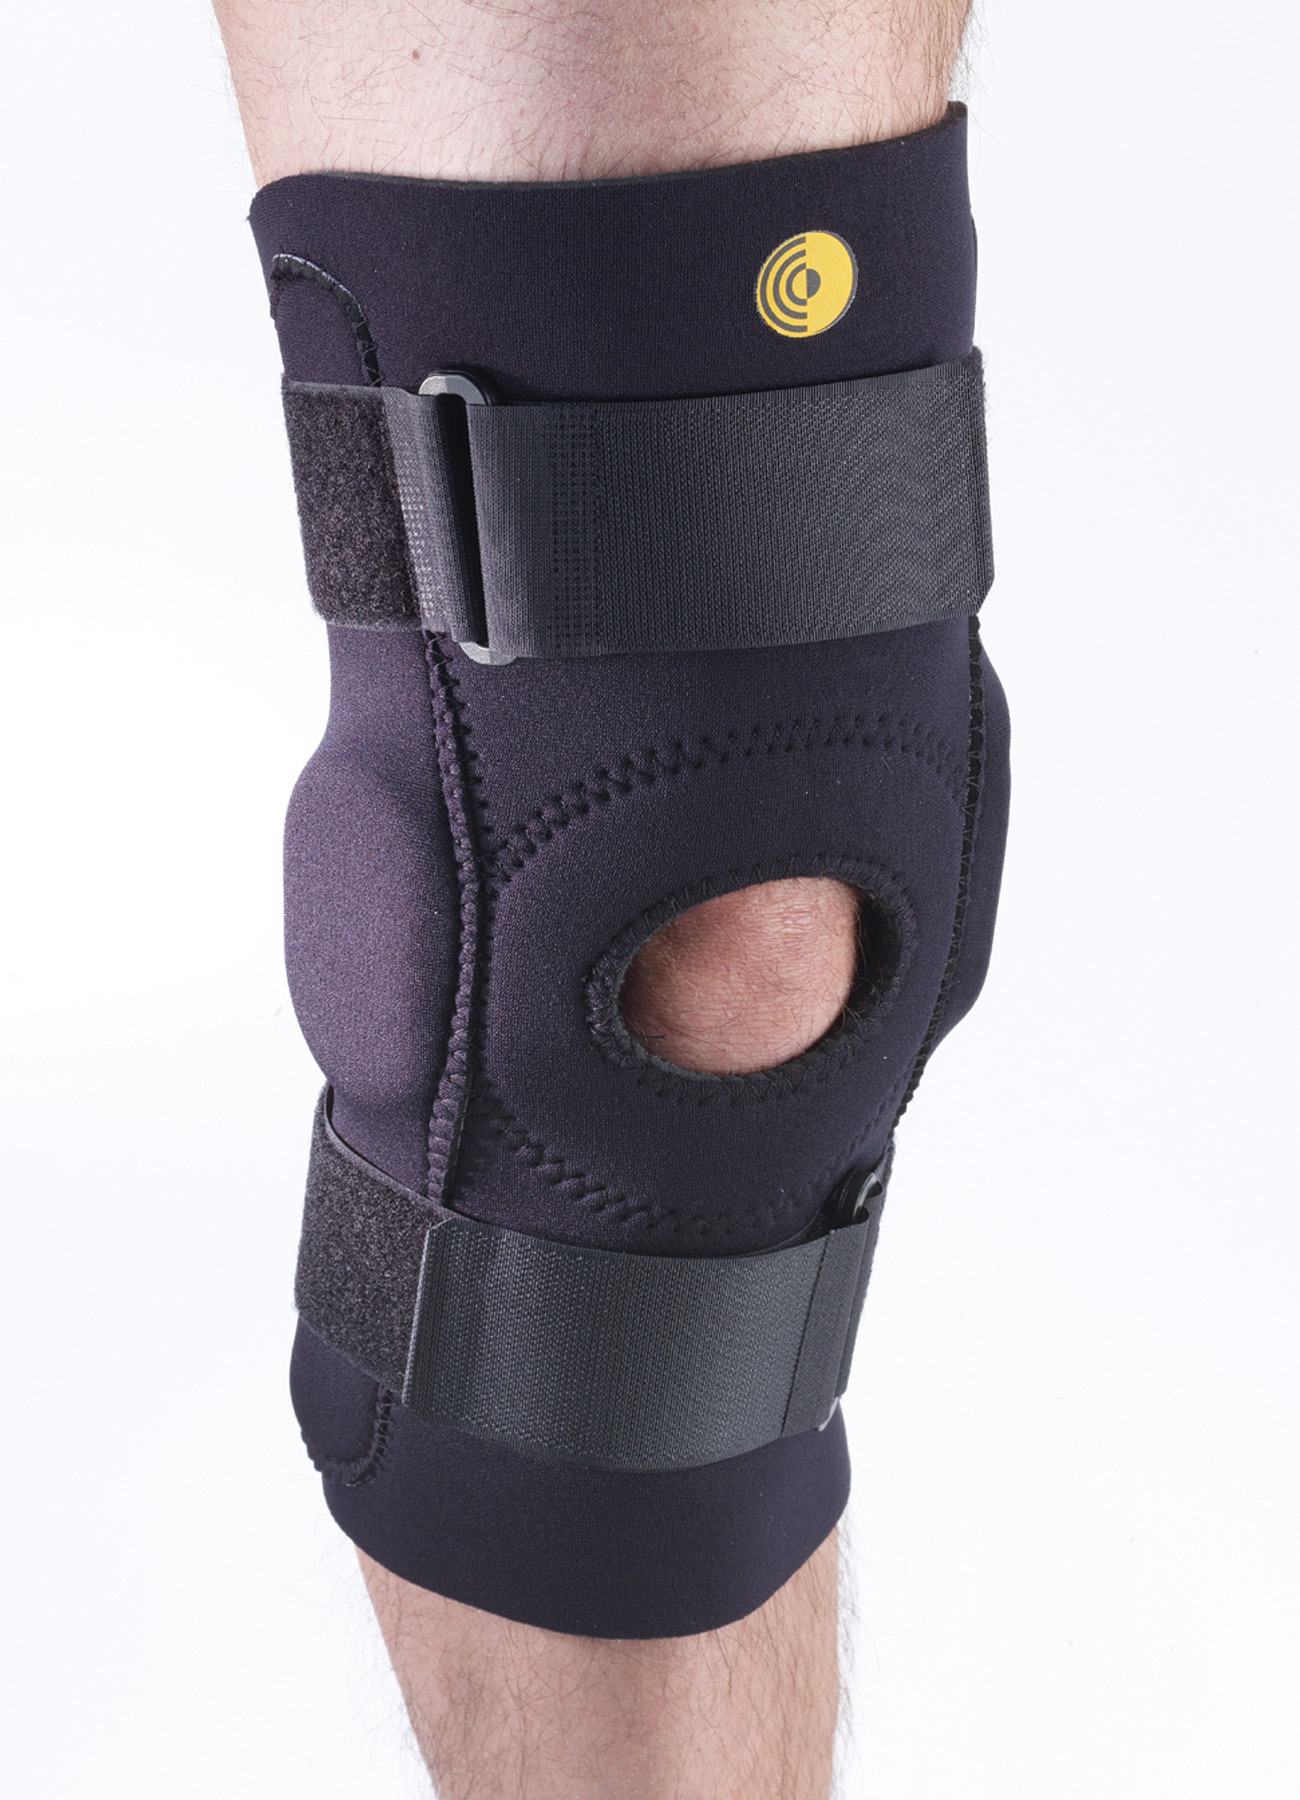 Corflex Inc Hinged Knee Support